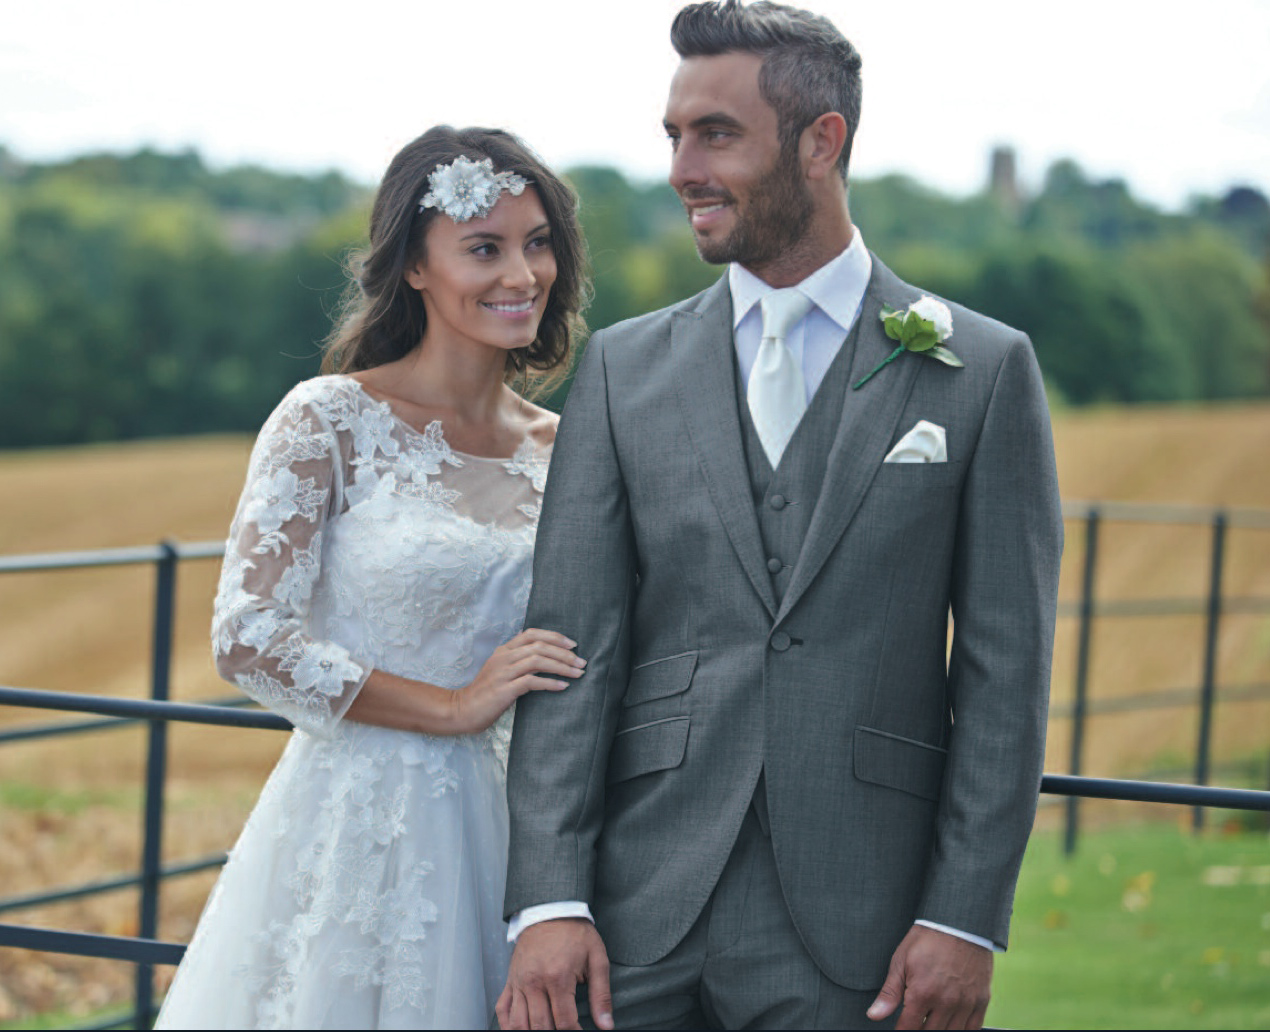 Wedding Dresses Bristol | Bridal Shops